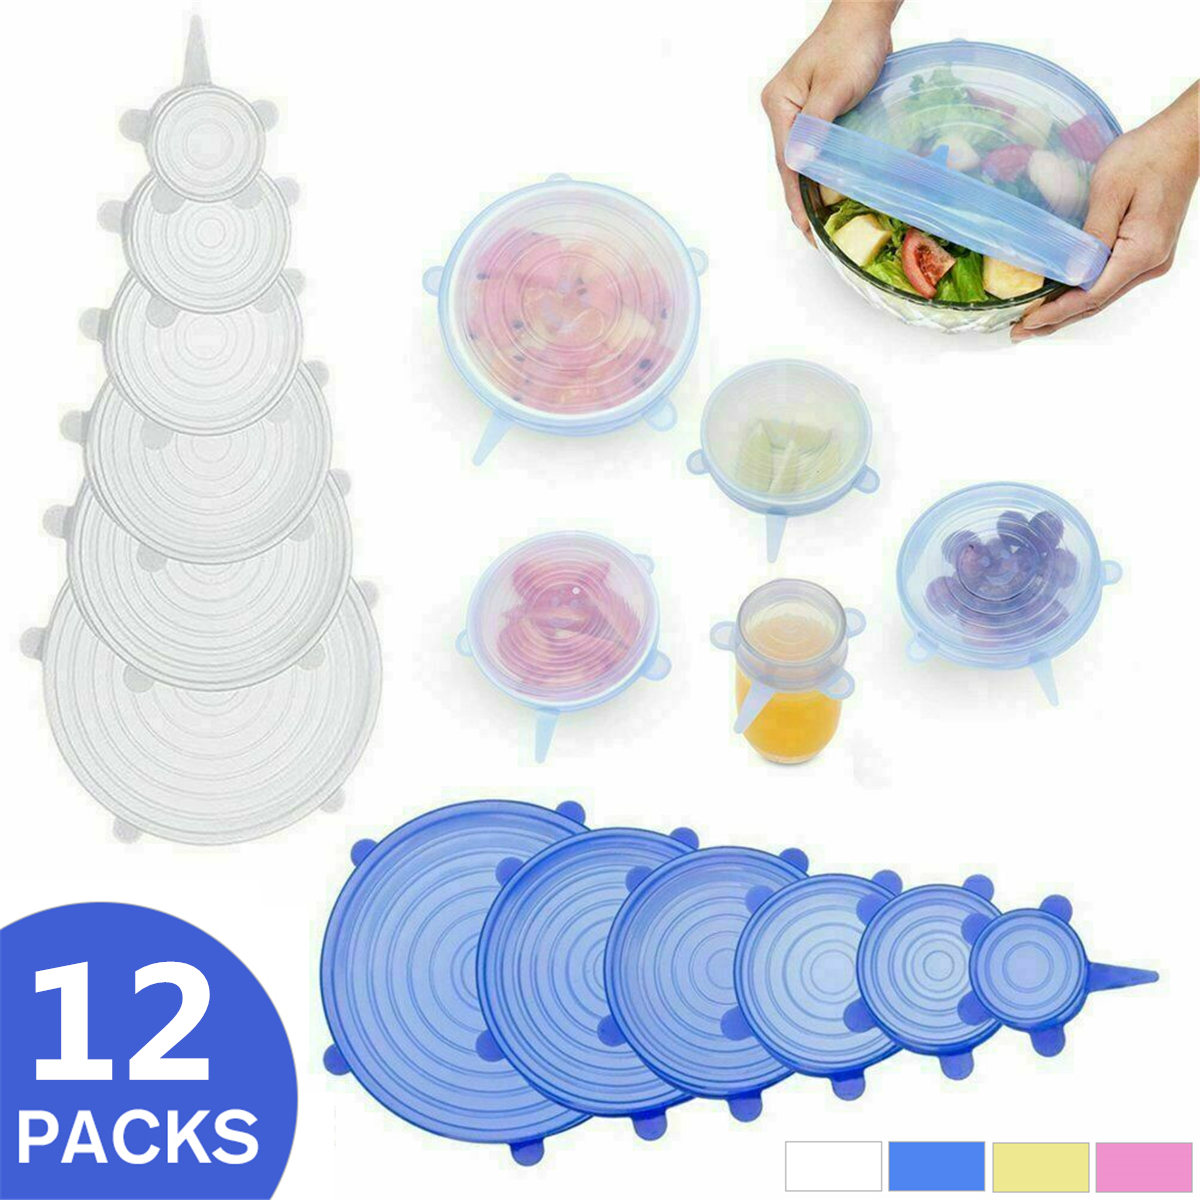 12Pcs/Set Silicone Food Seal Cover Stretch Lids Reusable Bowl Cover Stretch Wraps Food Fresh Keeping Film Kitchen Accessories